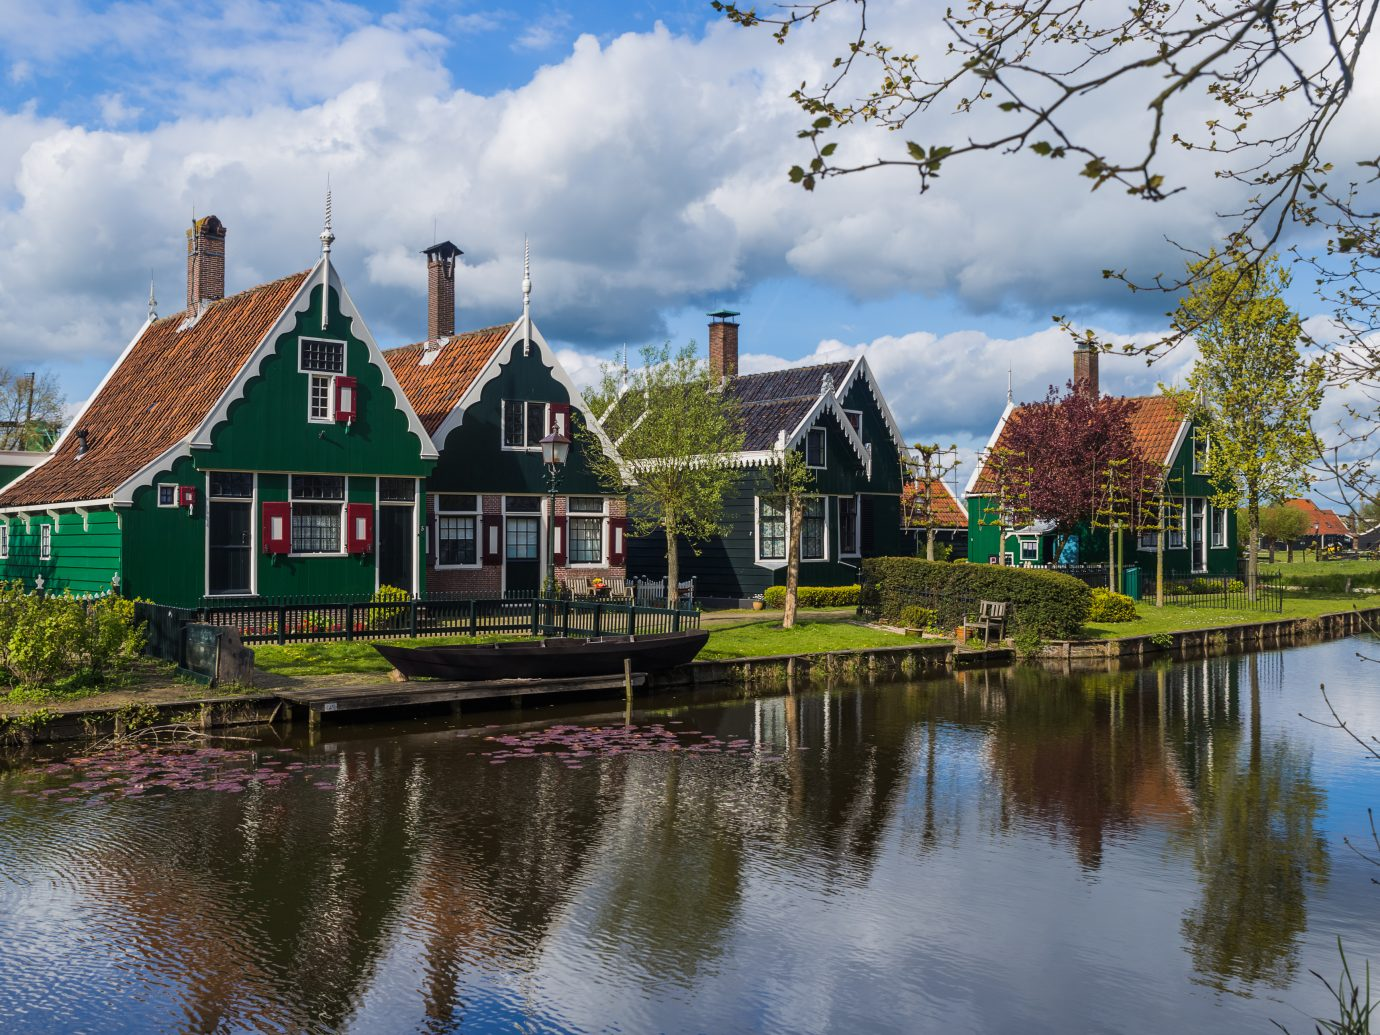 Village Zaanse Schans in Netherlands